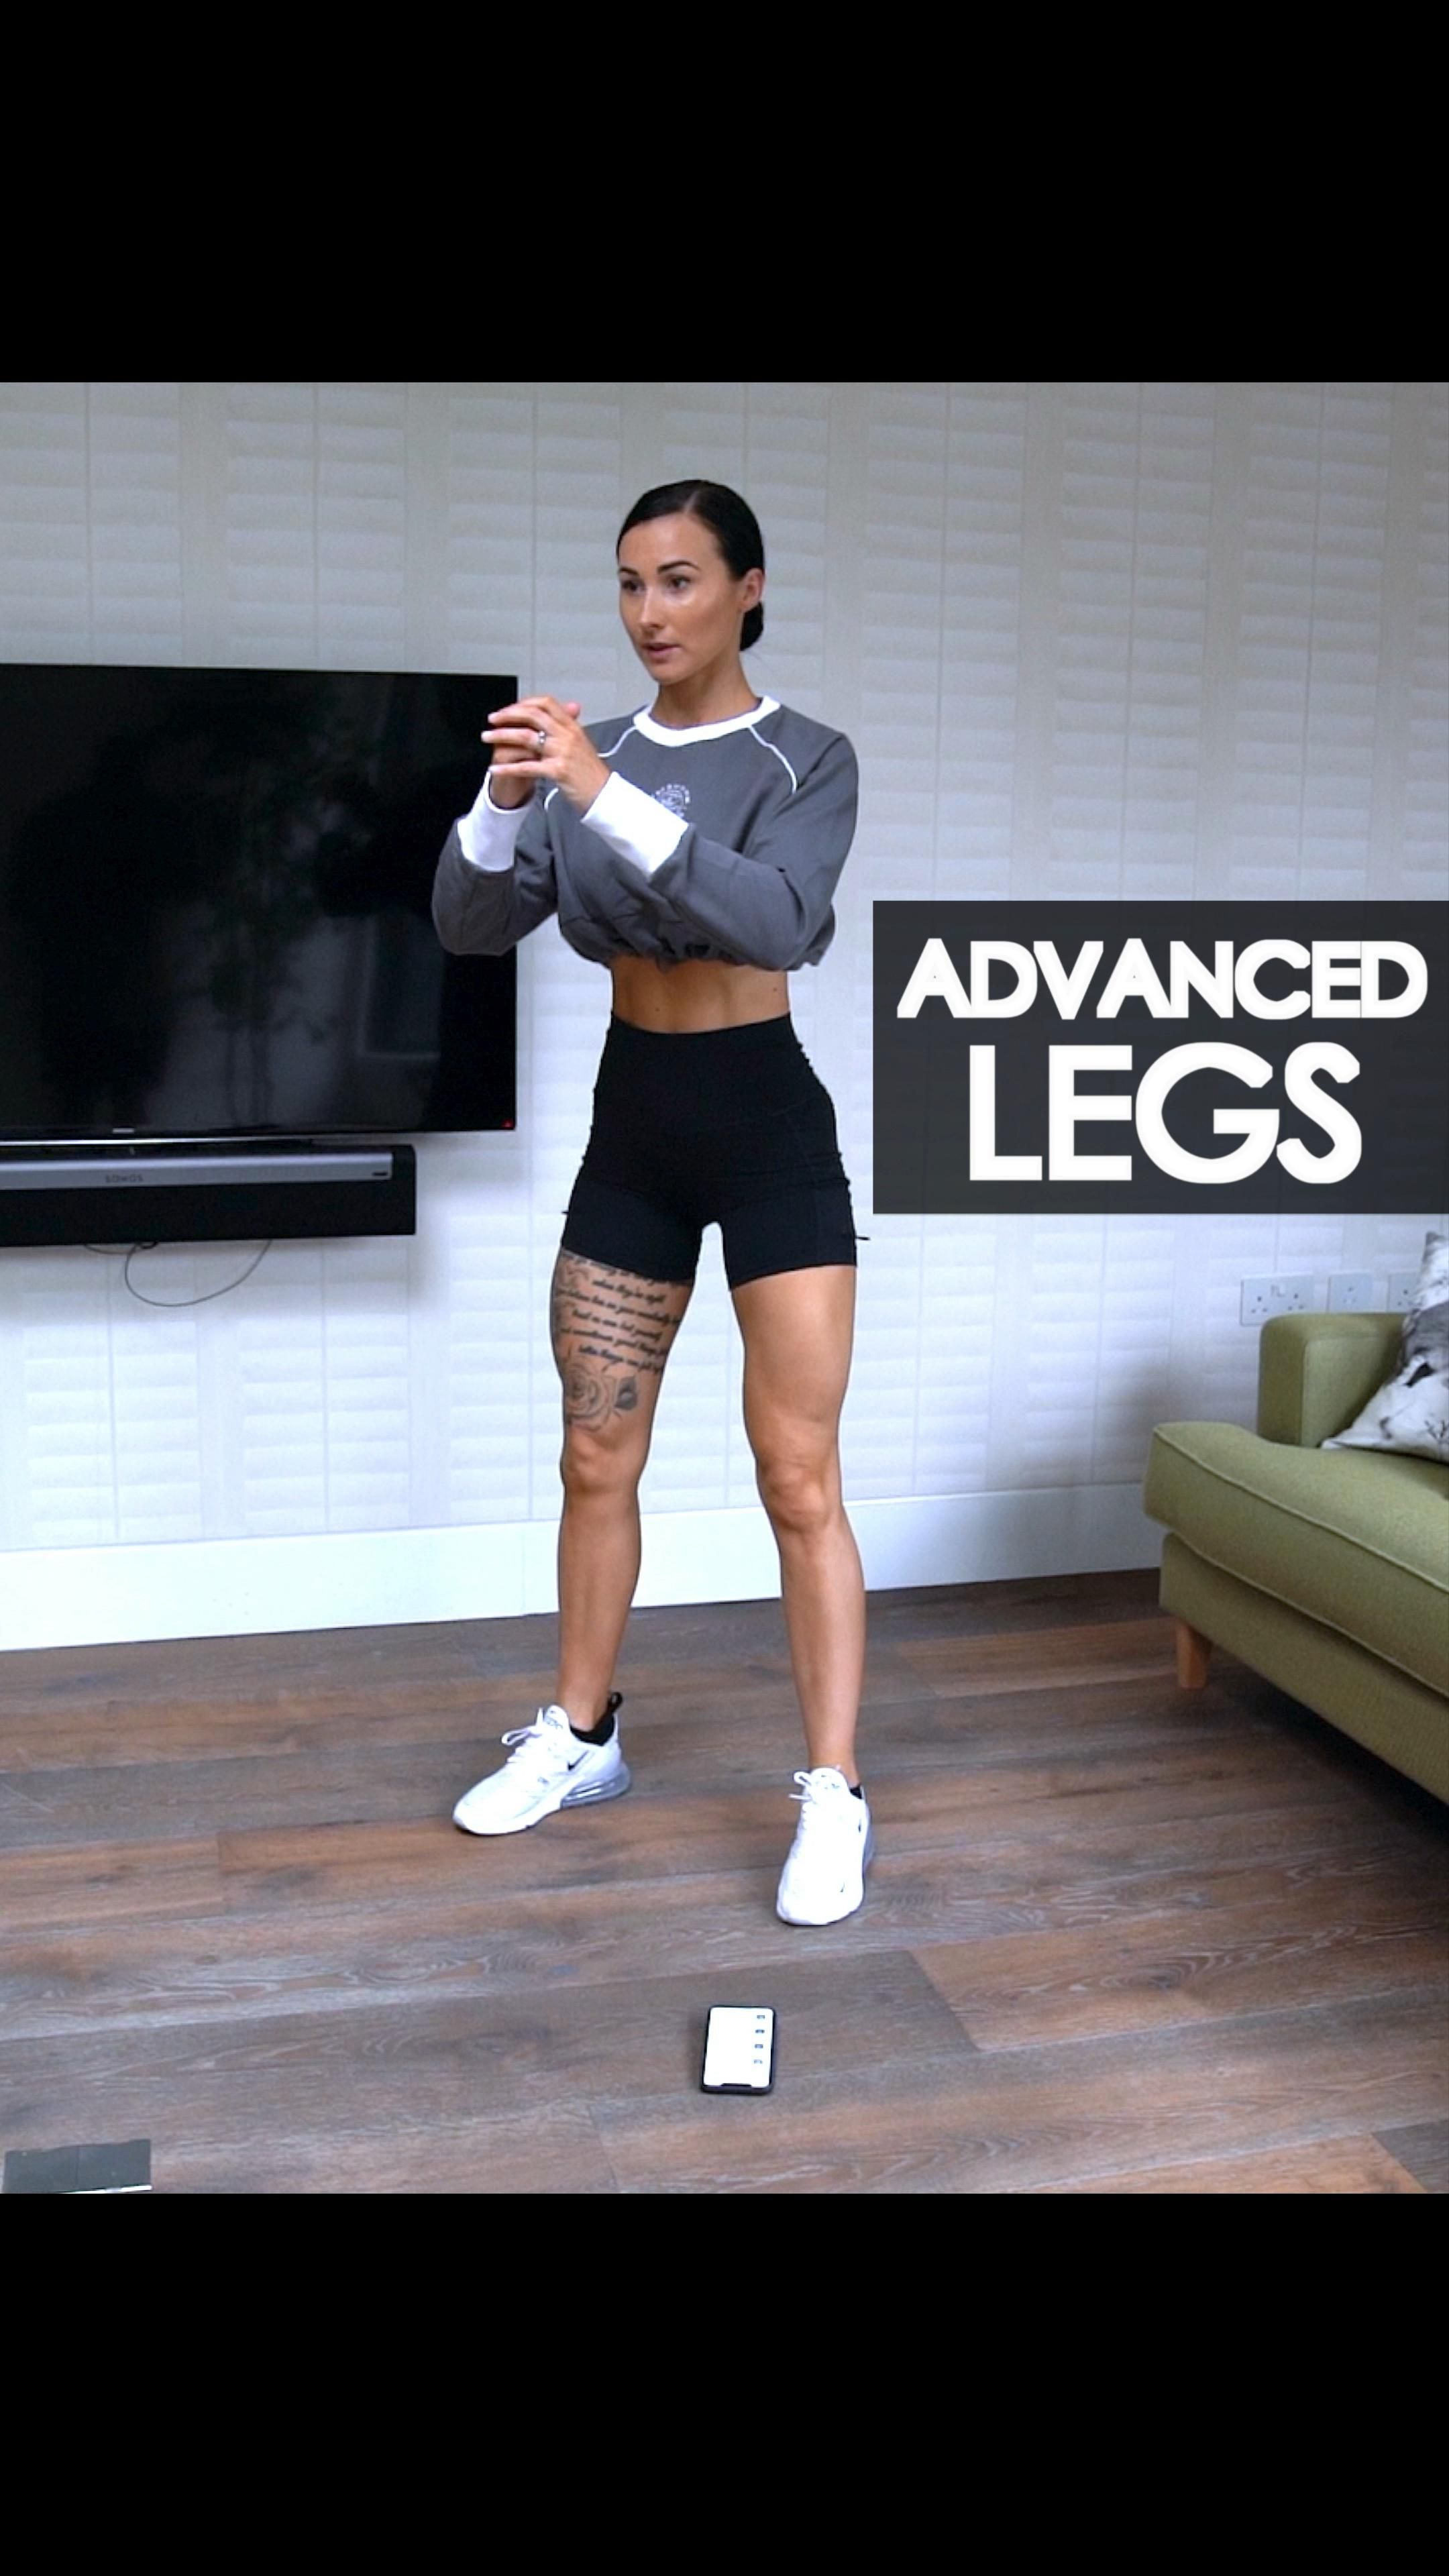 Legs Advanced Home Workout | Strong and Sxy